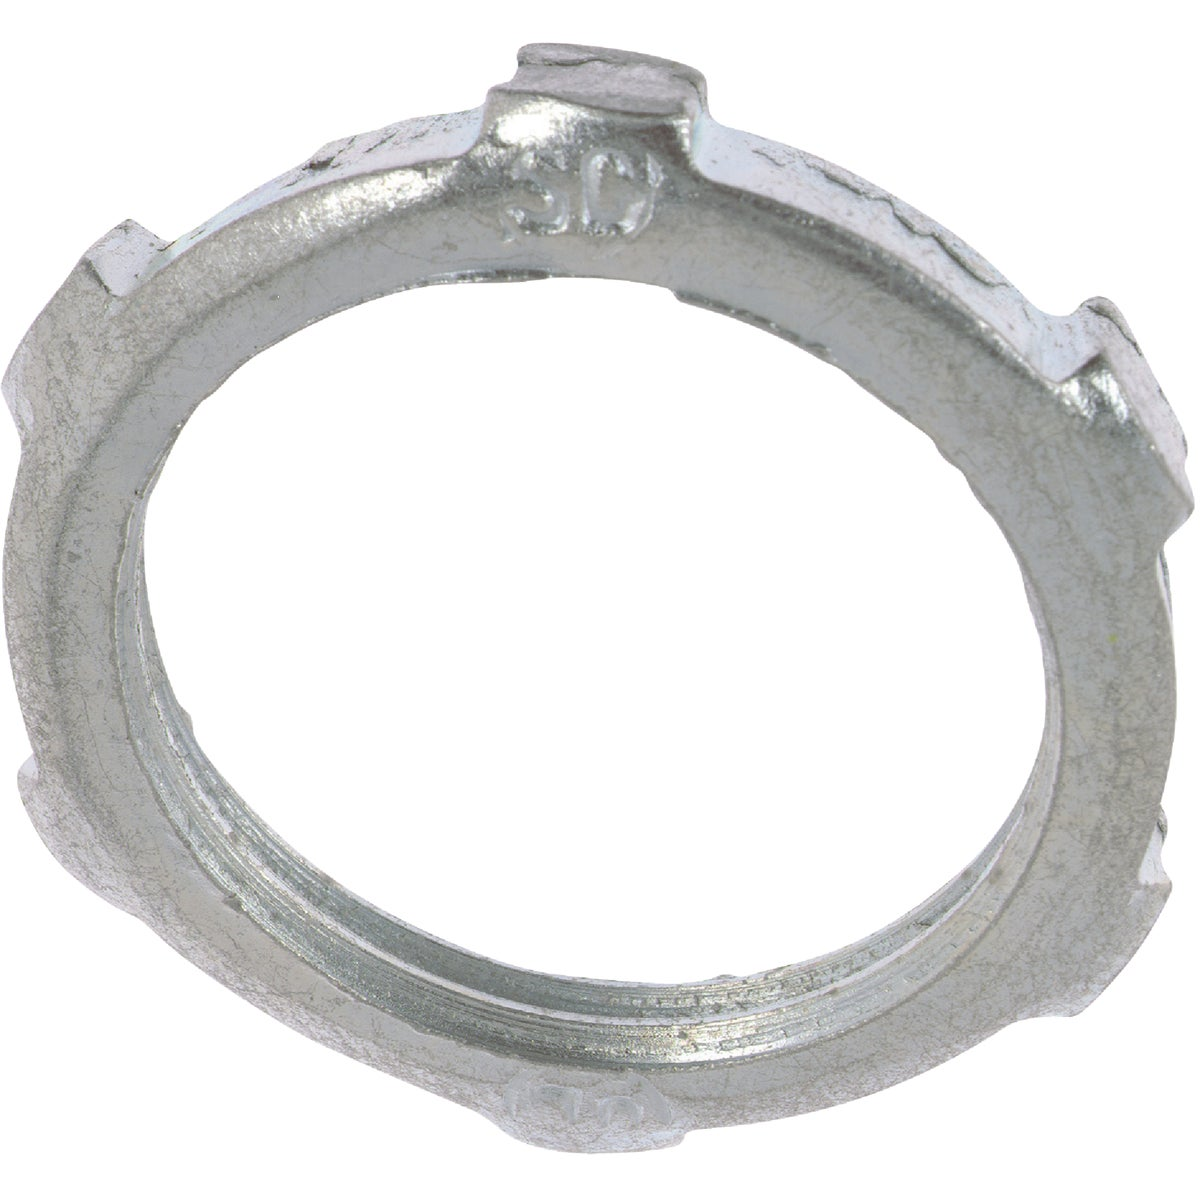 "5PK 1/2"" LOCKNUT - LN101M5 by Thomas & Betts"